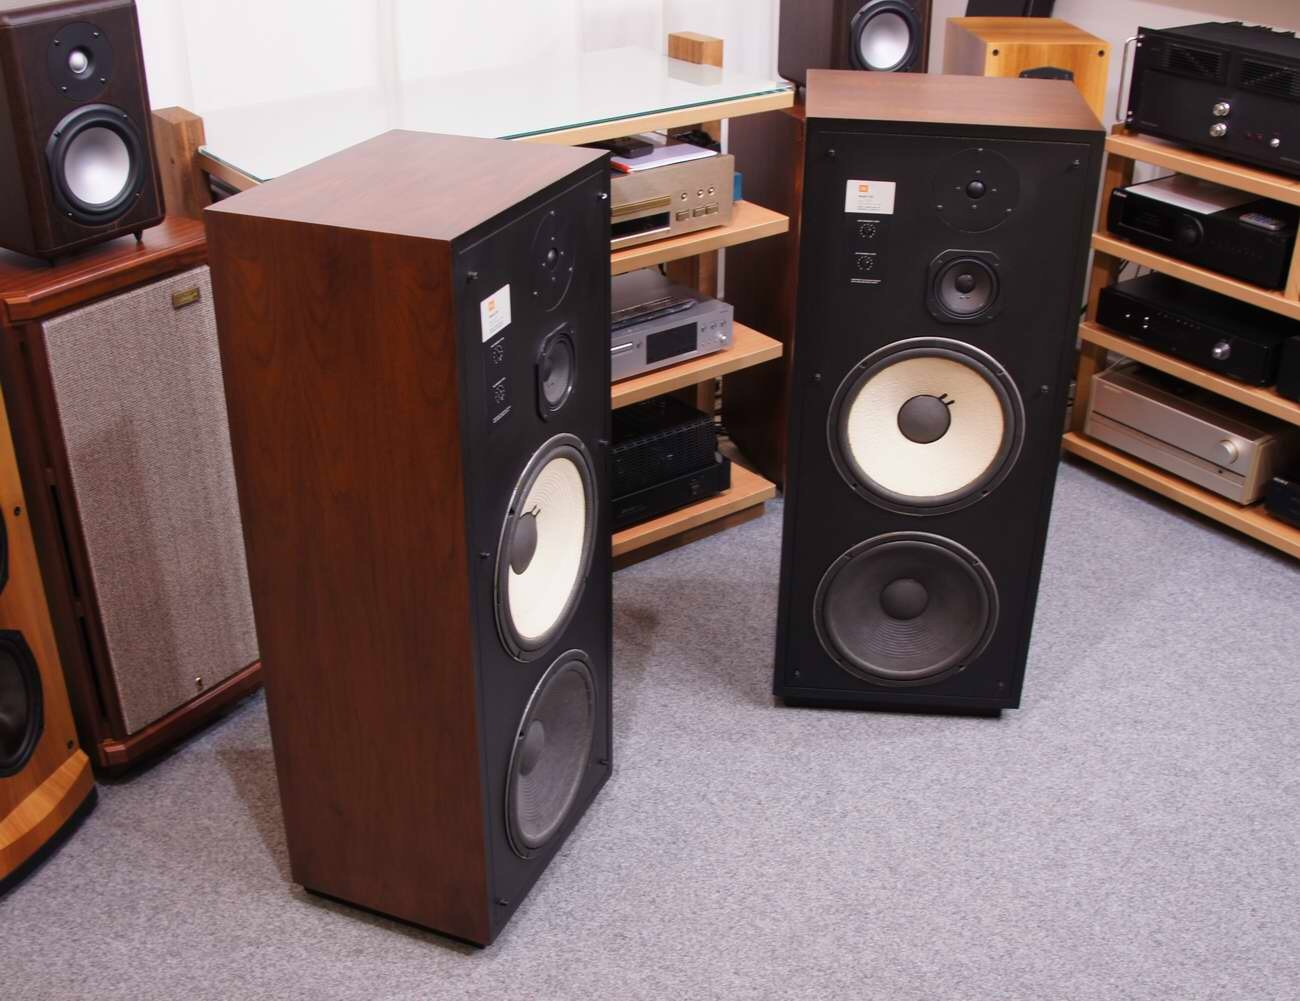 They Are A Floorstanding Variant Of The L110 112 Bookshelf Speaker It Uses Tweeter And Midrange From But Woofer L112